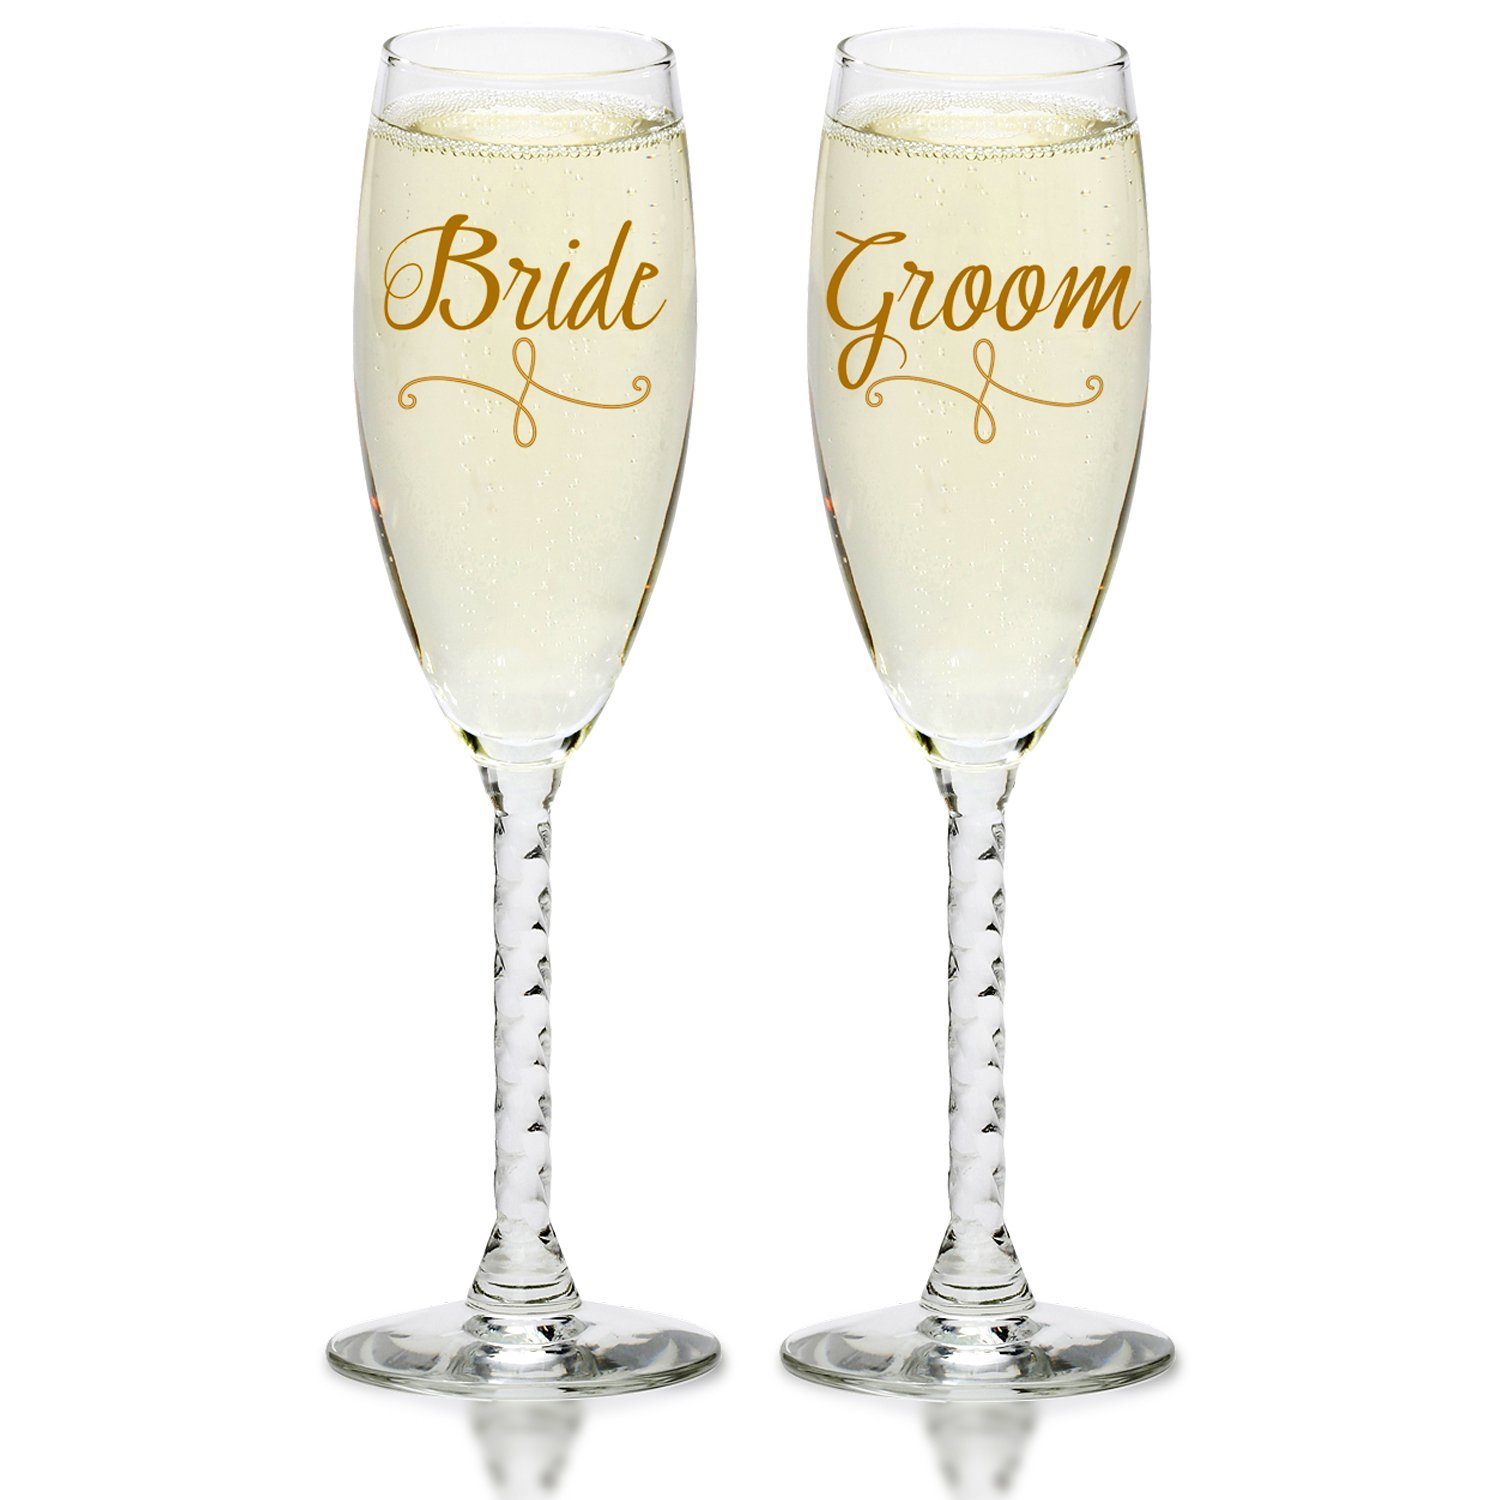 Bride & Groom Gold Champagne Flutes - Elegant Wedding Toast Glass Set For Couples - Engagement, Wedding, Anniversary, House Warming, Hostess Gift